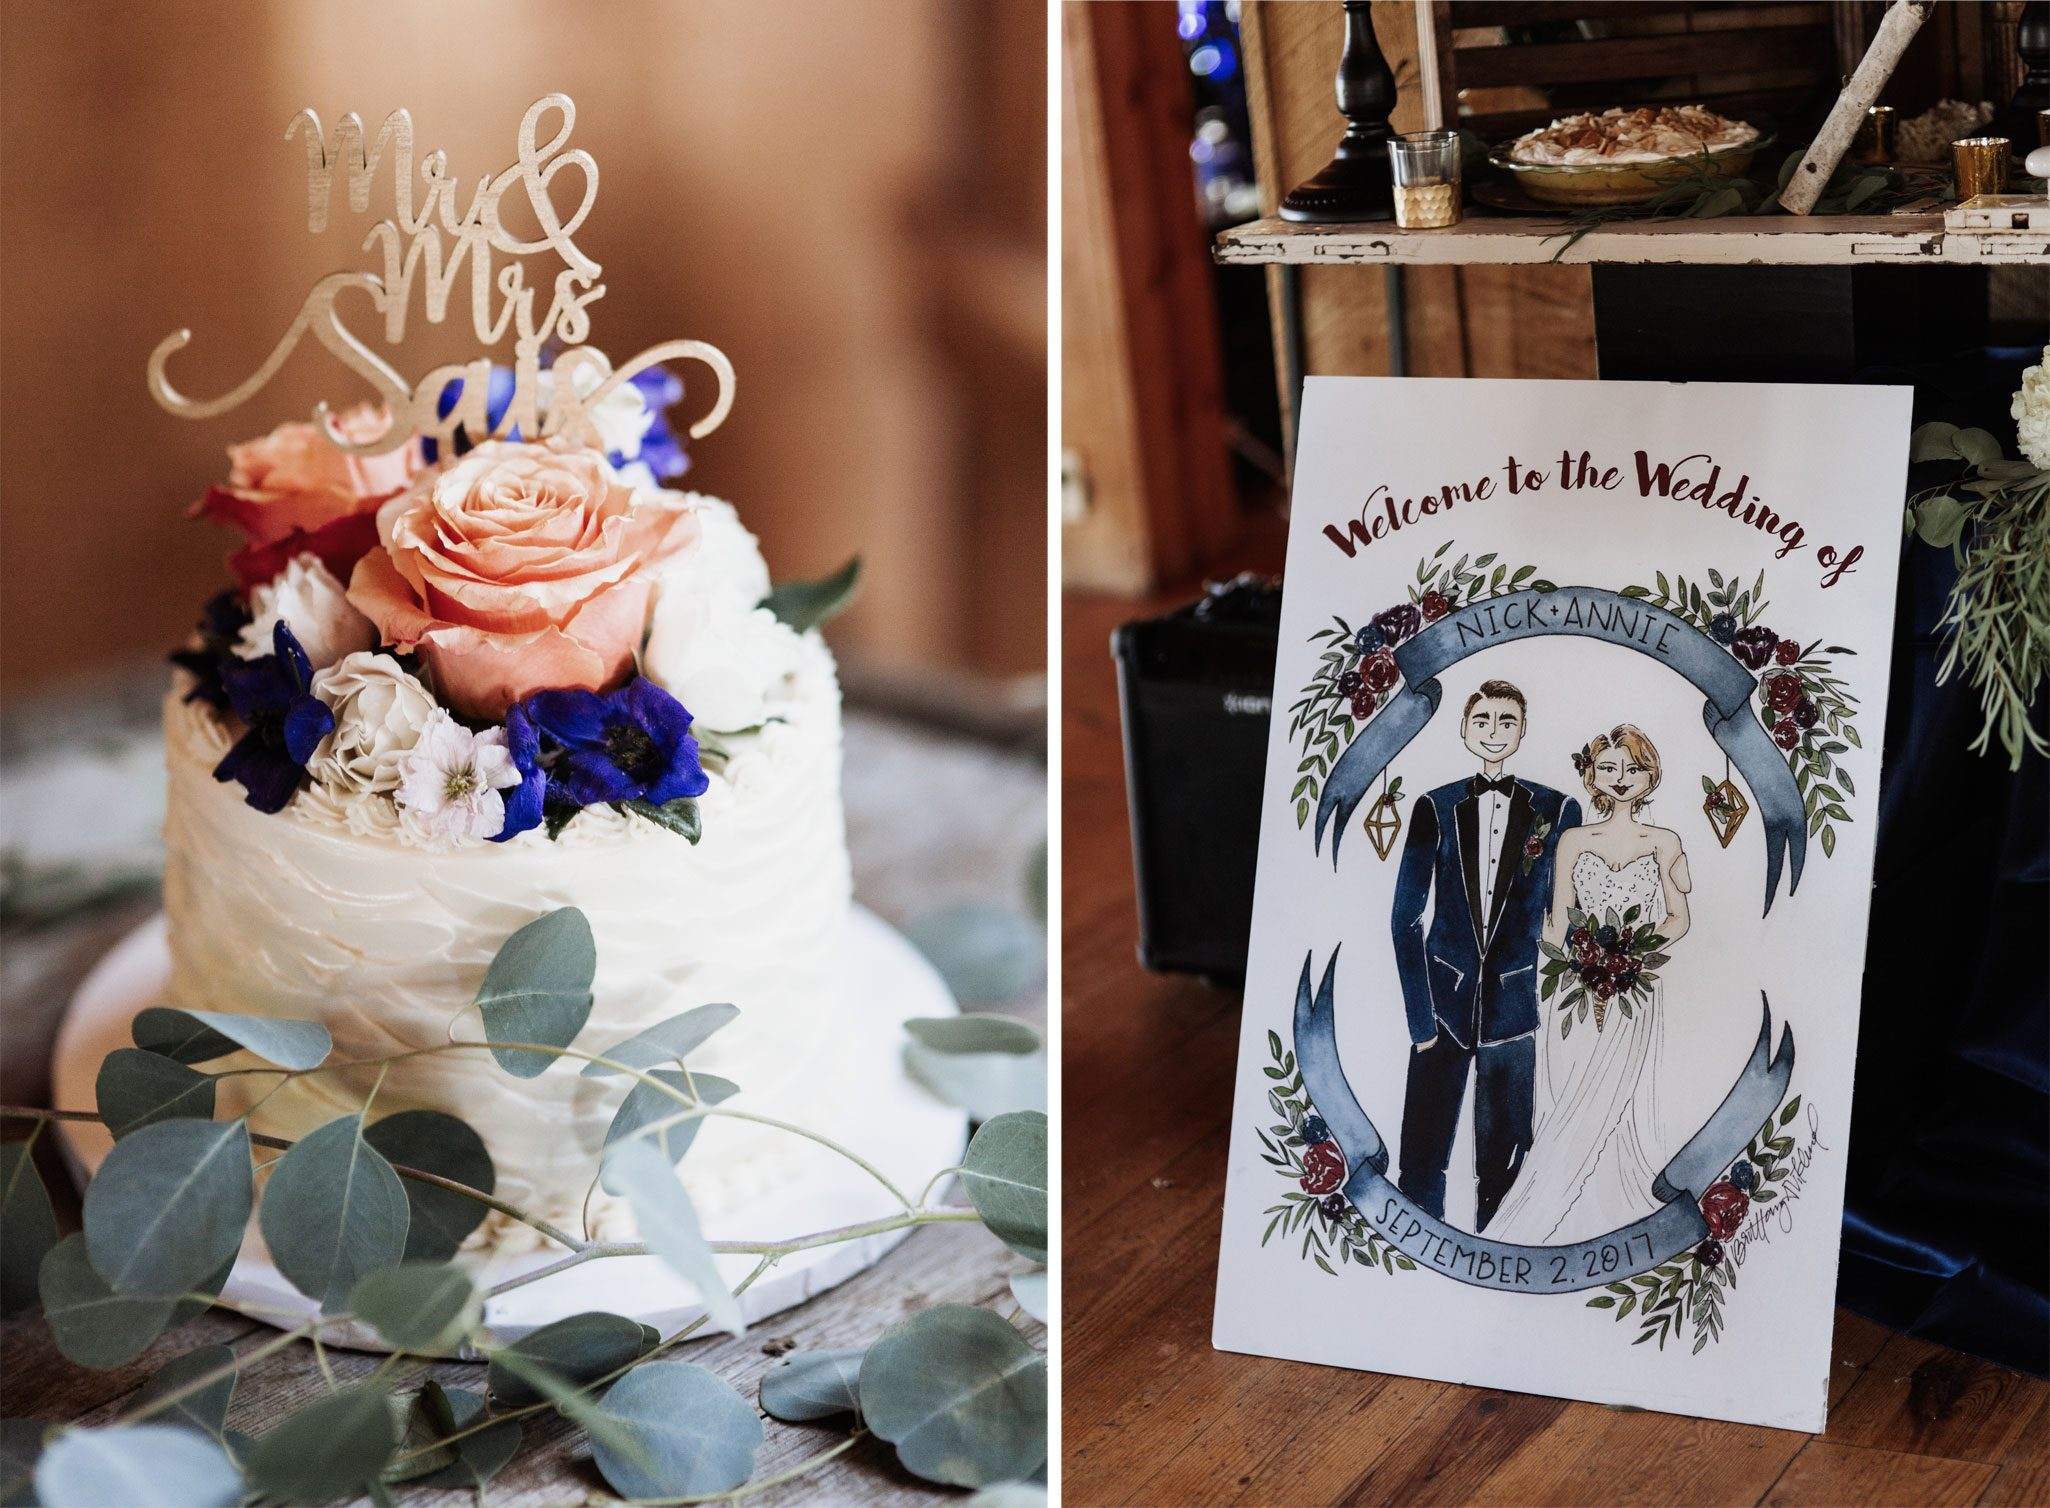 A Whimsical Dream Wedding at Ridgewood